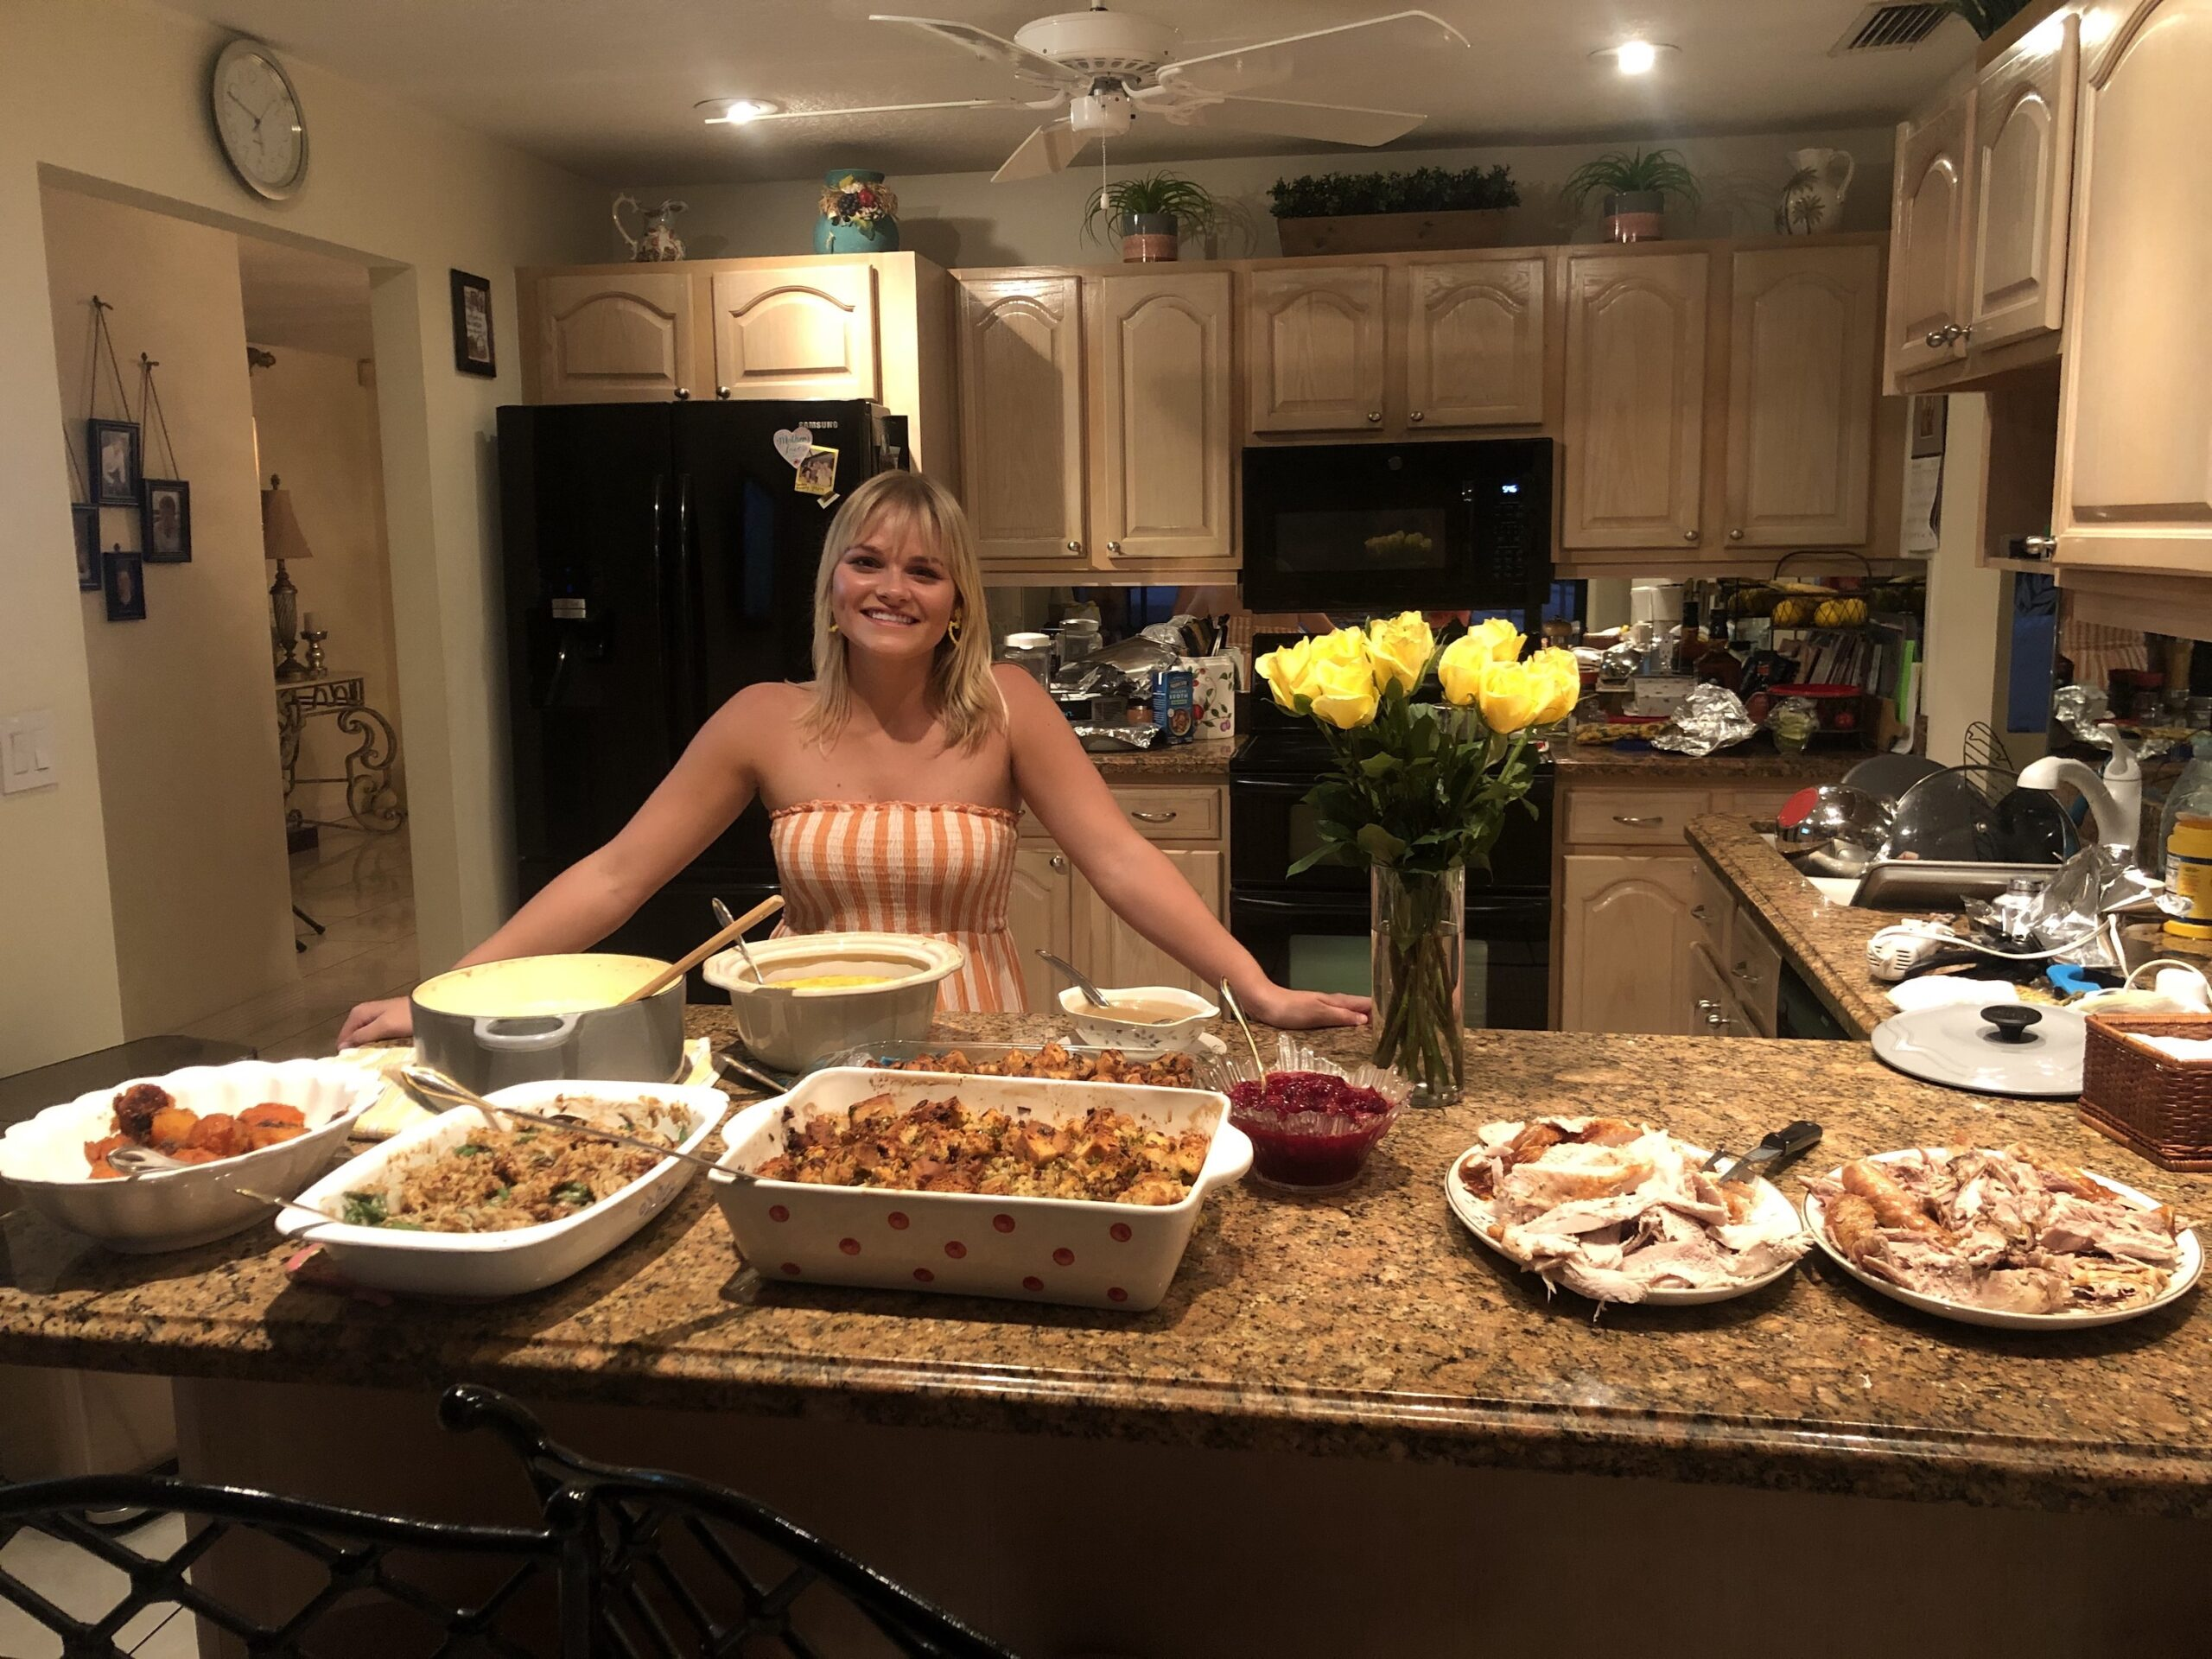 Michelle Mackey picked up cooking during the pandemic. This is the first Thanksgiving meal she has ever made. [Photo courtesy of Michelle Mackey]